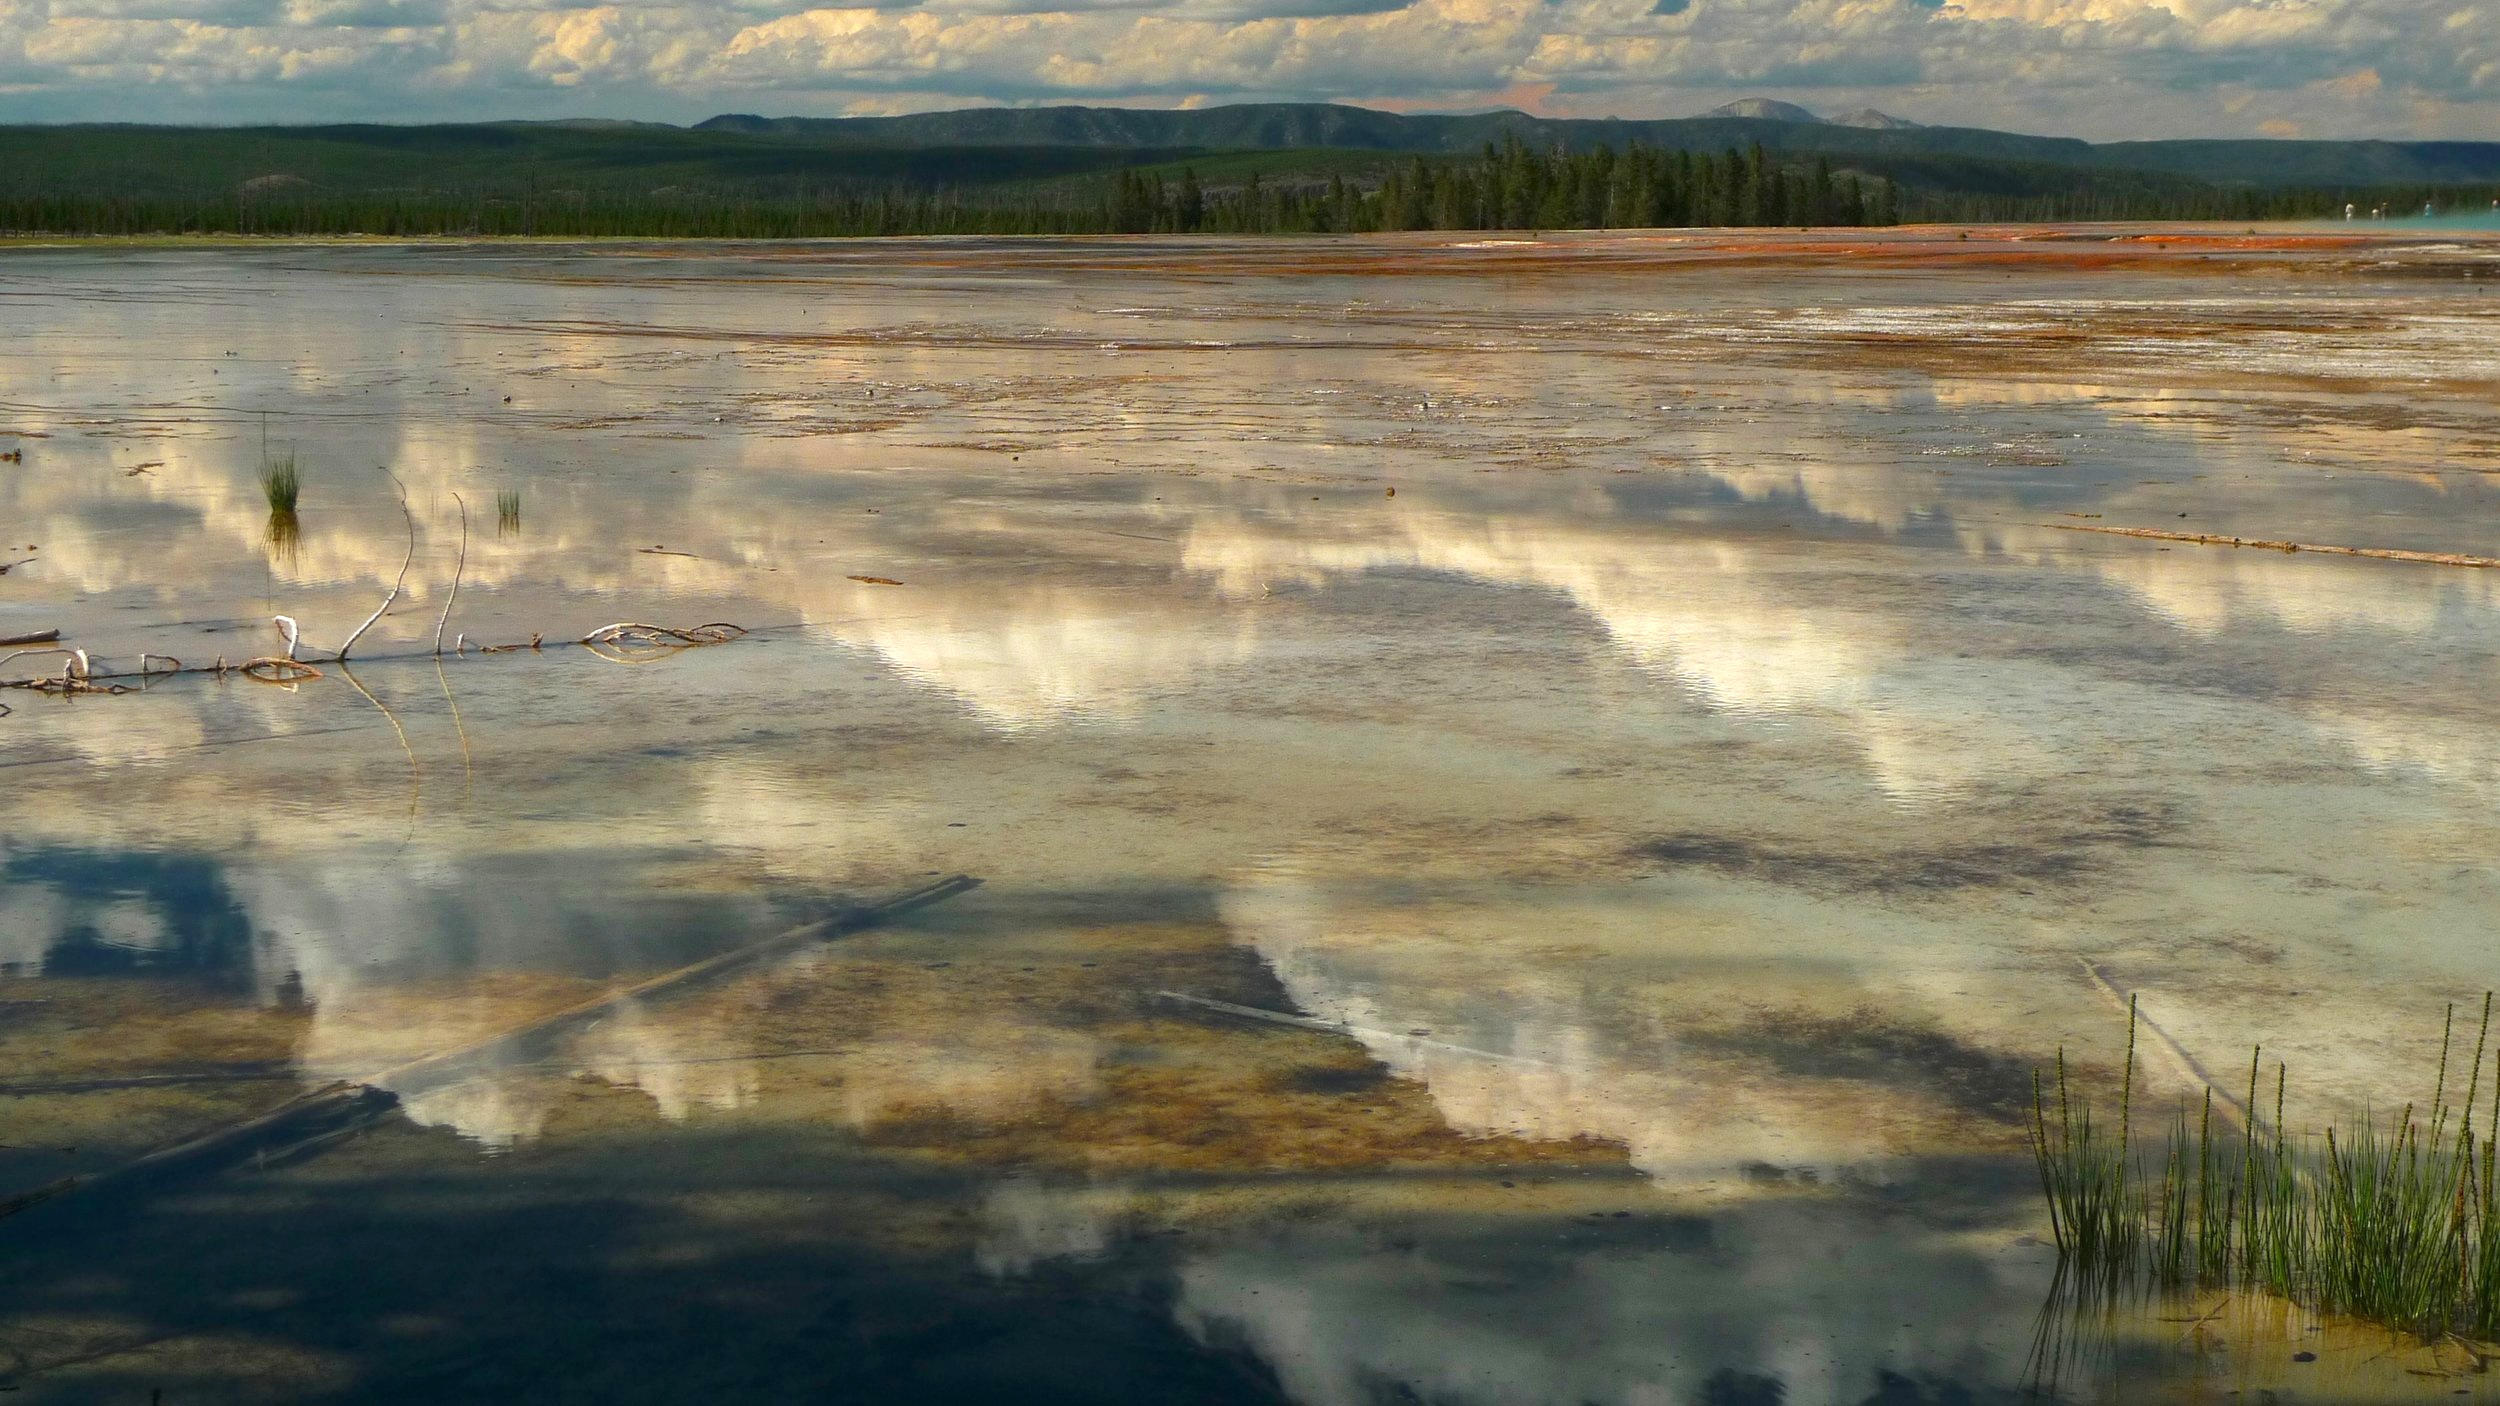 The Great Prismatic Spring